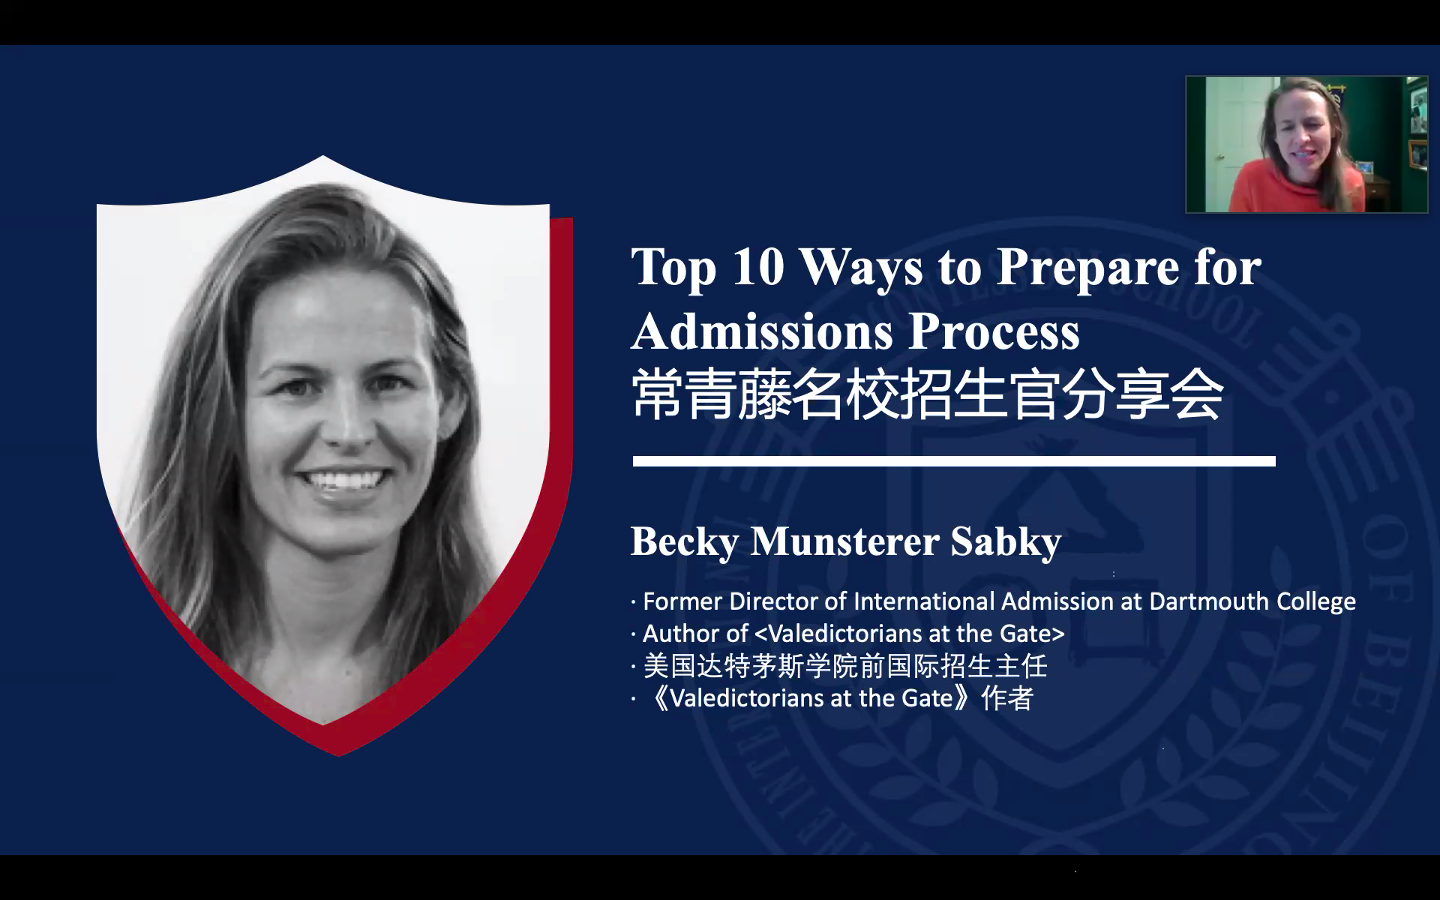 How to Stand out in Admissions Process